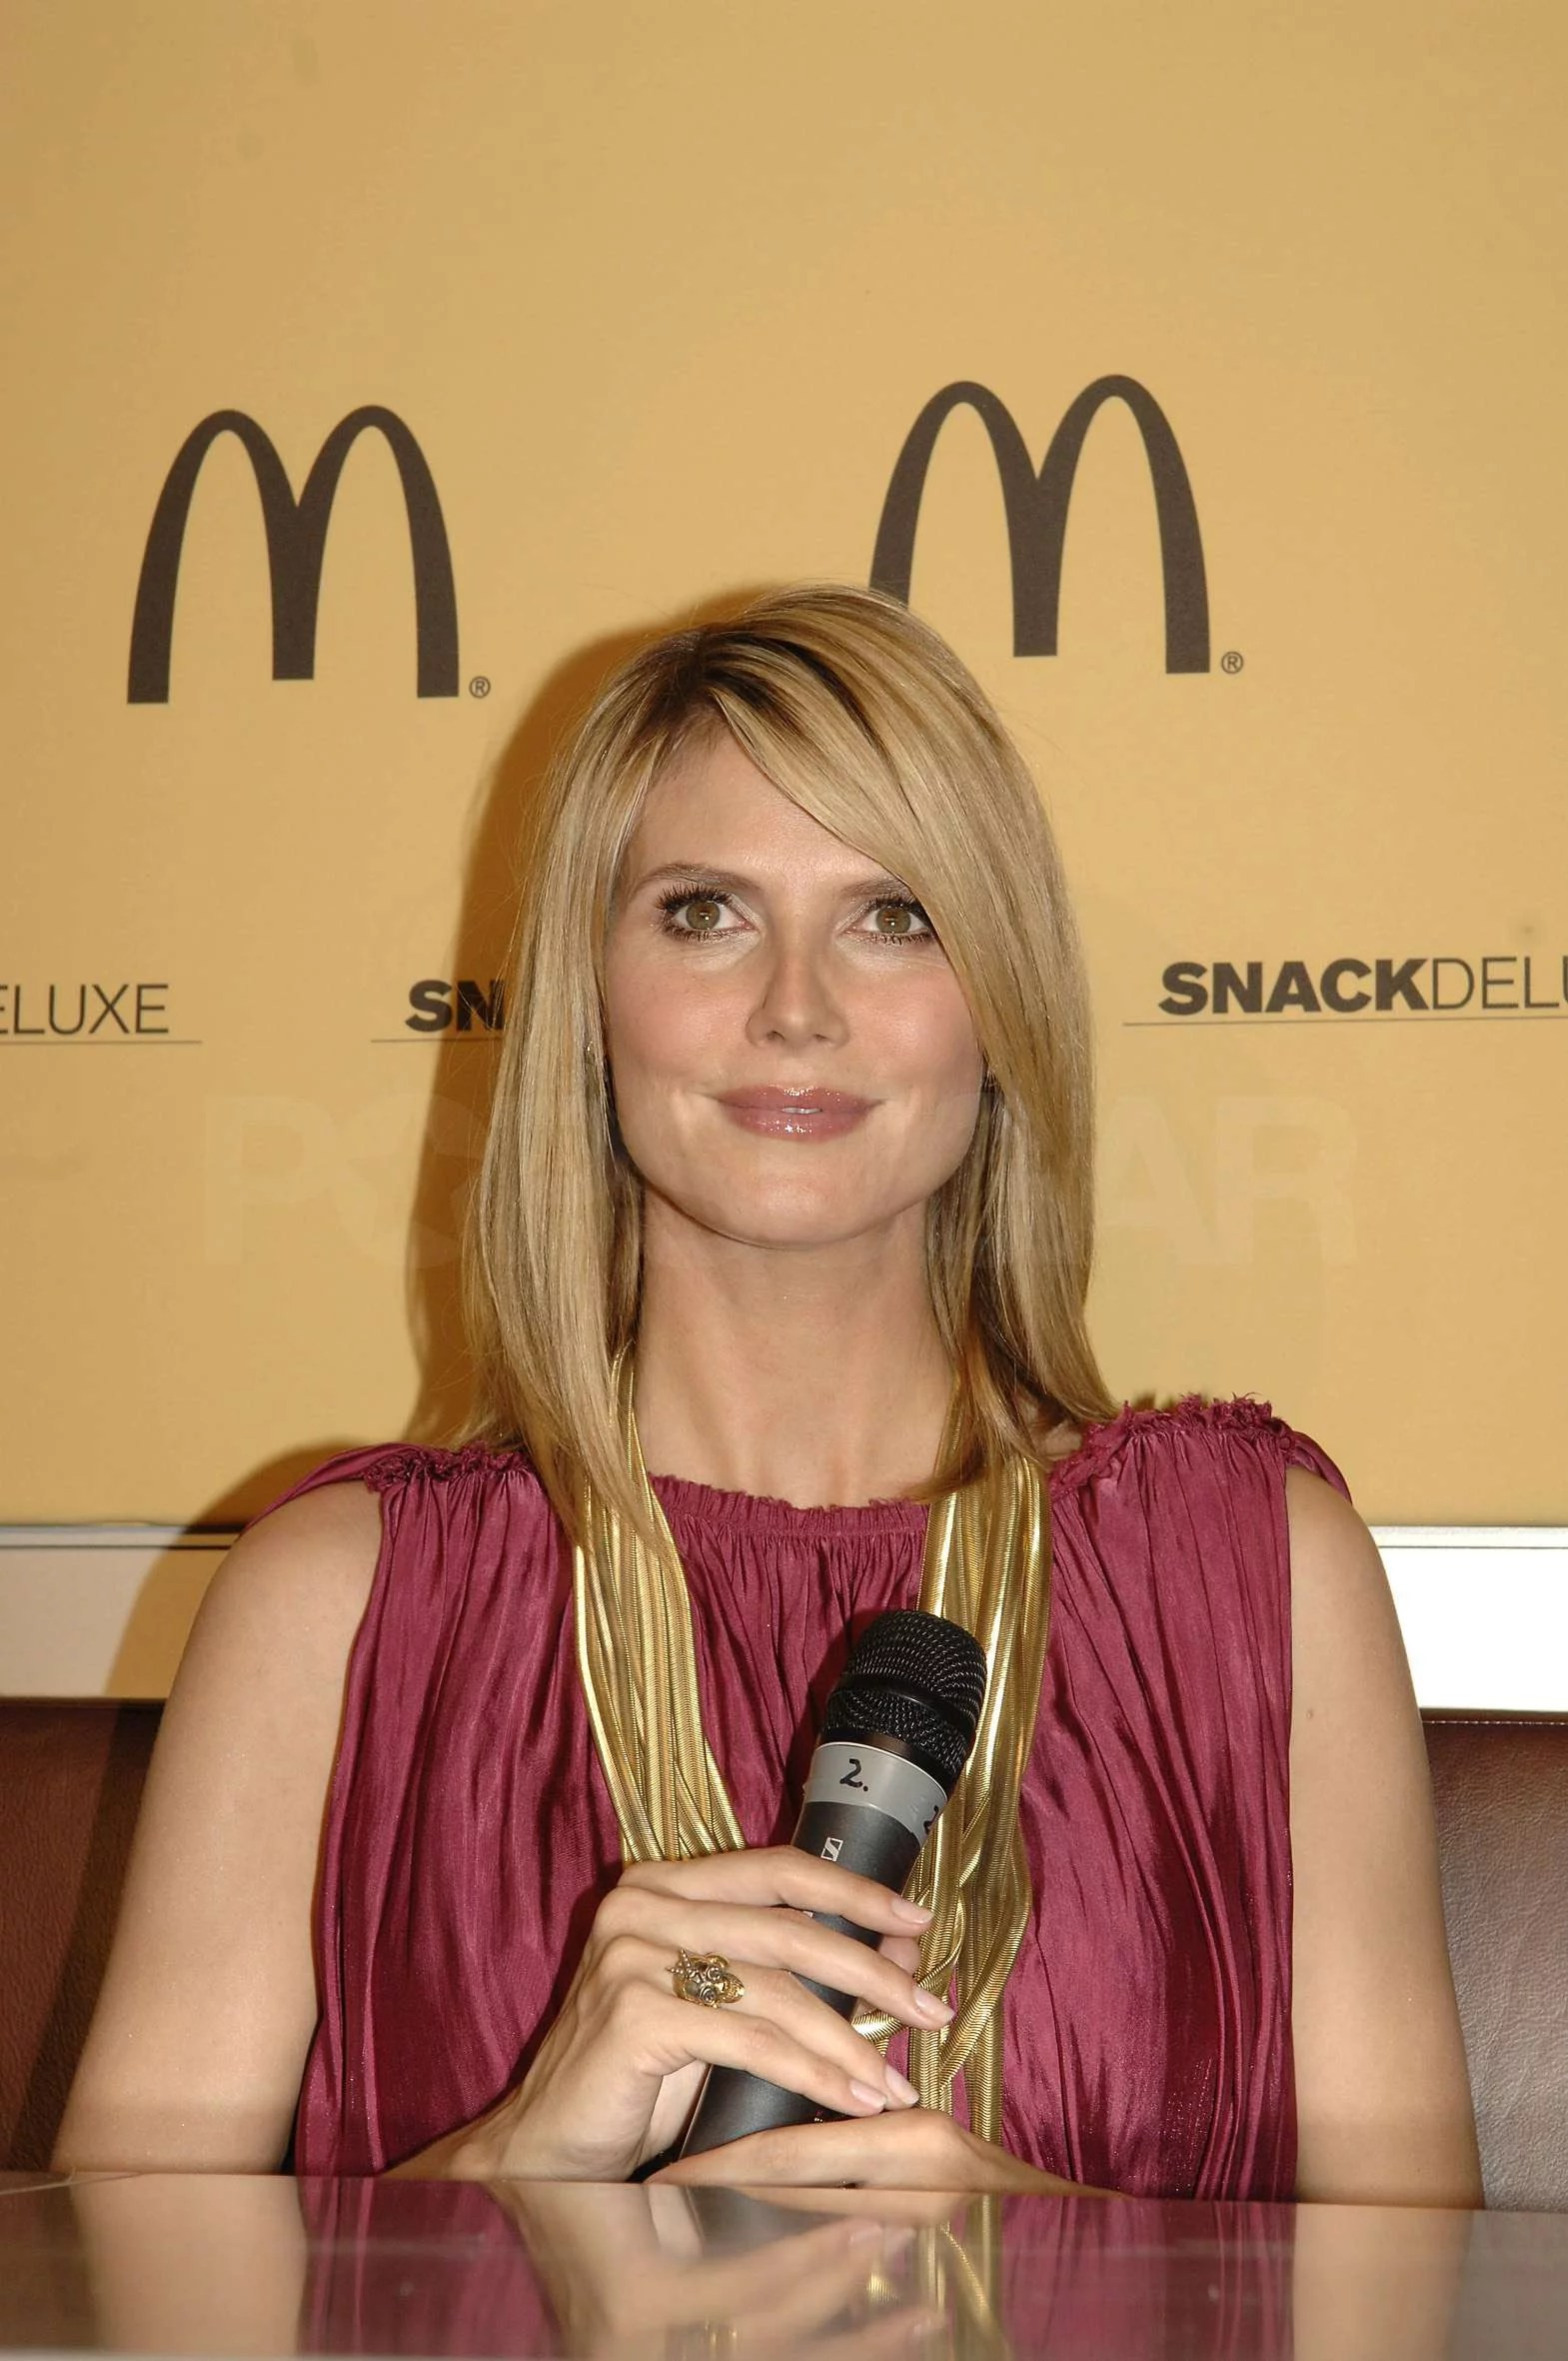 Baby Model München Photos Of Pregnant Heidi Klum At A Mcdonalds Event In